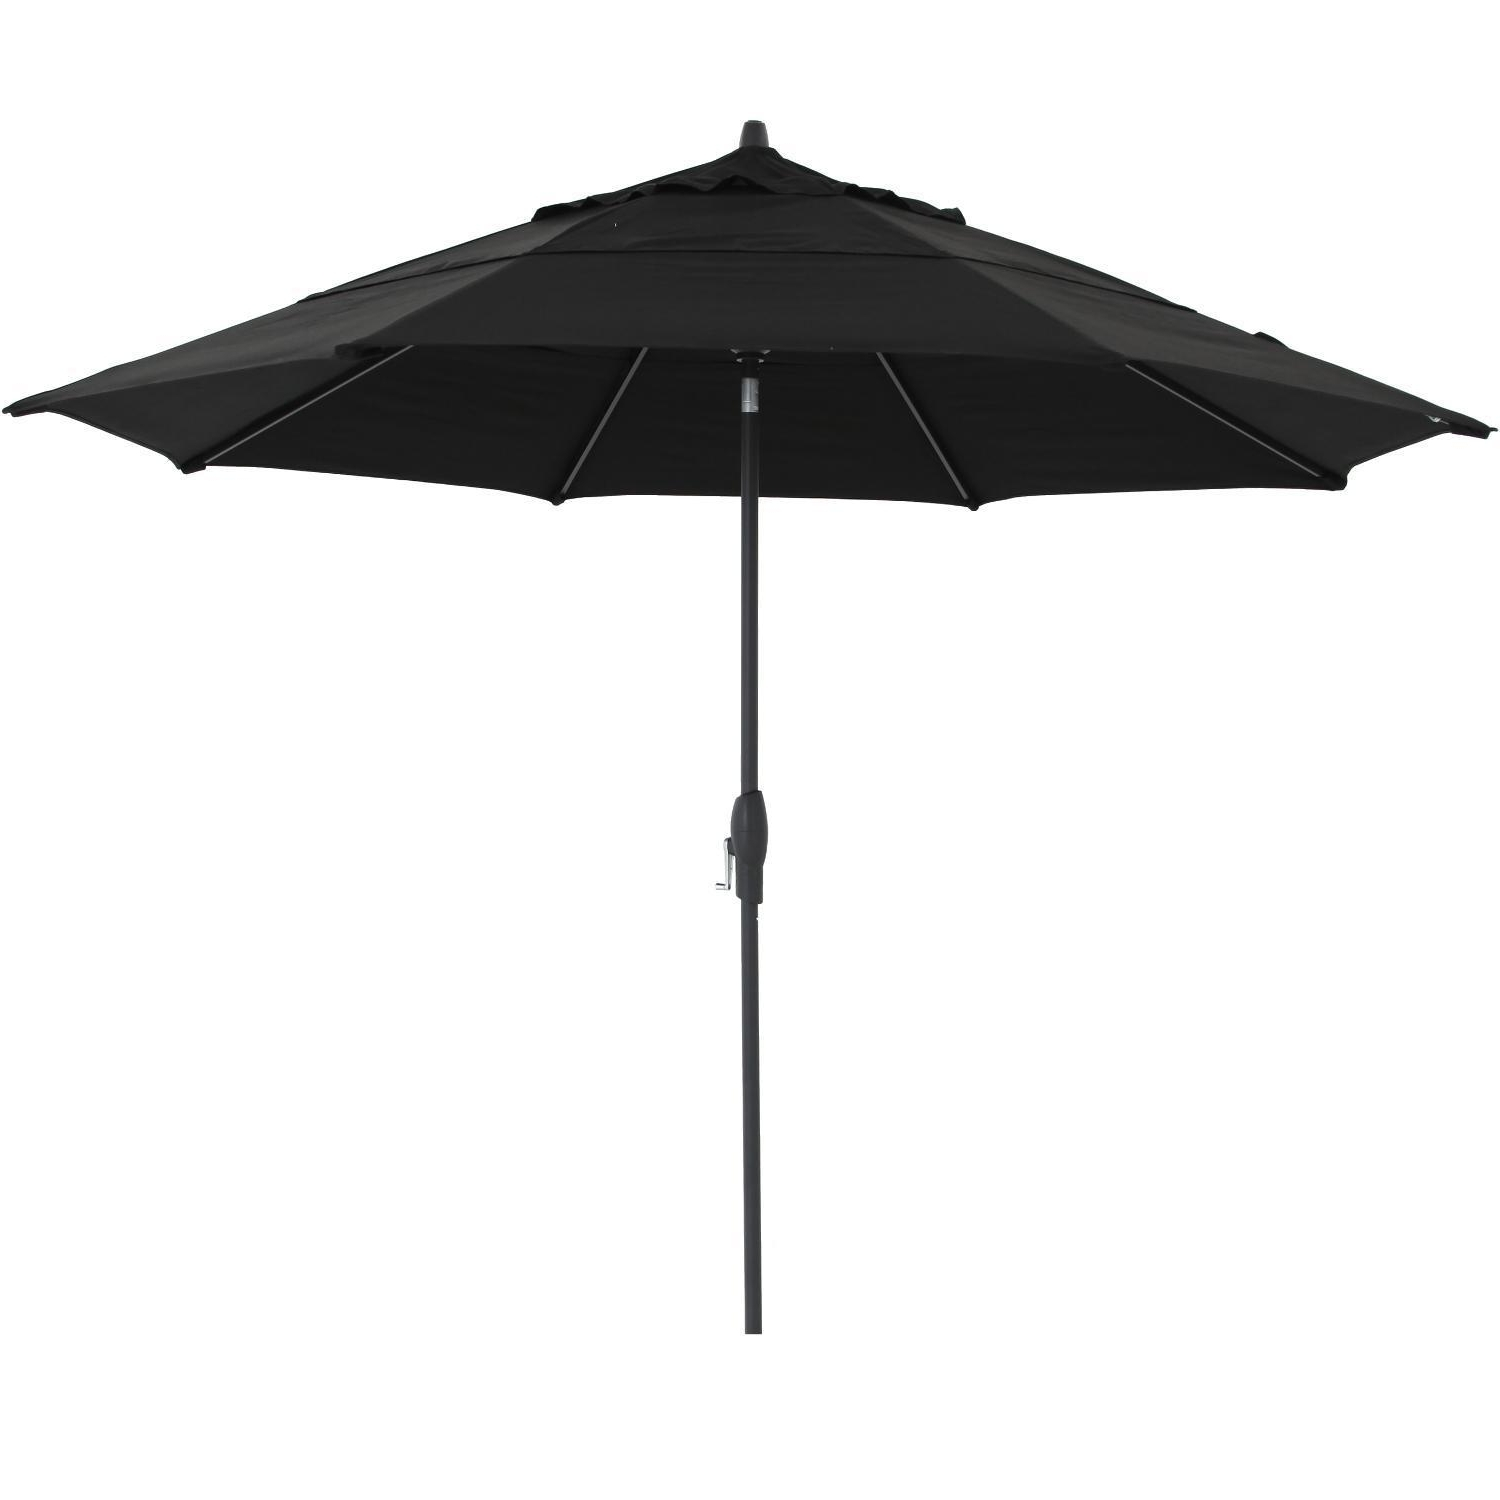 2019 11 Foot Patio Umbrellas Intended For Treasure Garden 11 Ft. Octagonal Aluminum Auto Tilt Patio Umbrella W (Gallery 19 of 20)